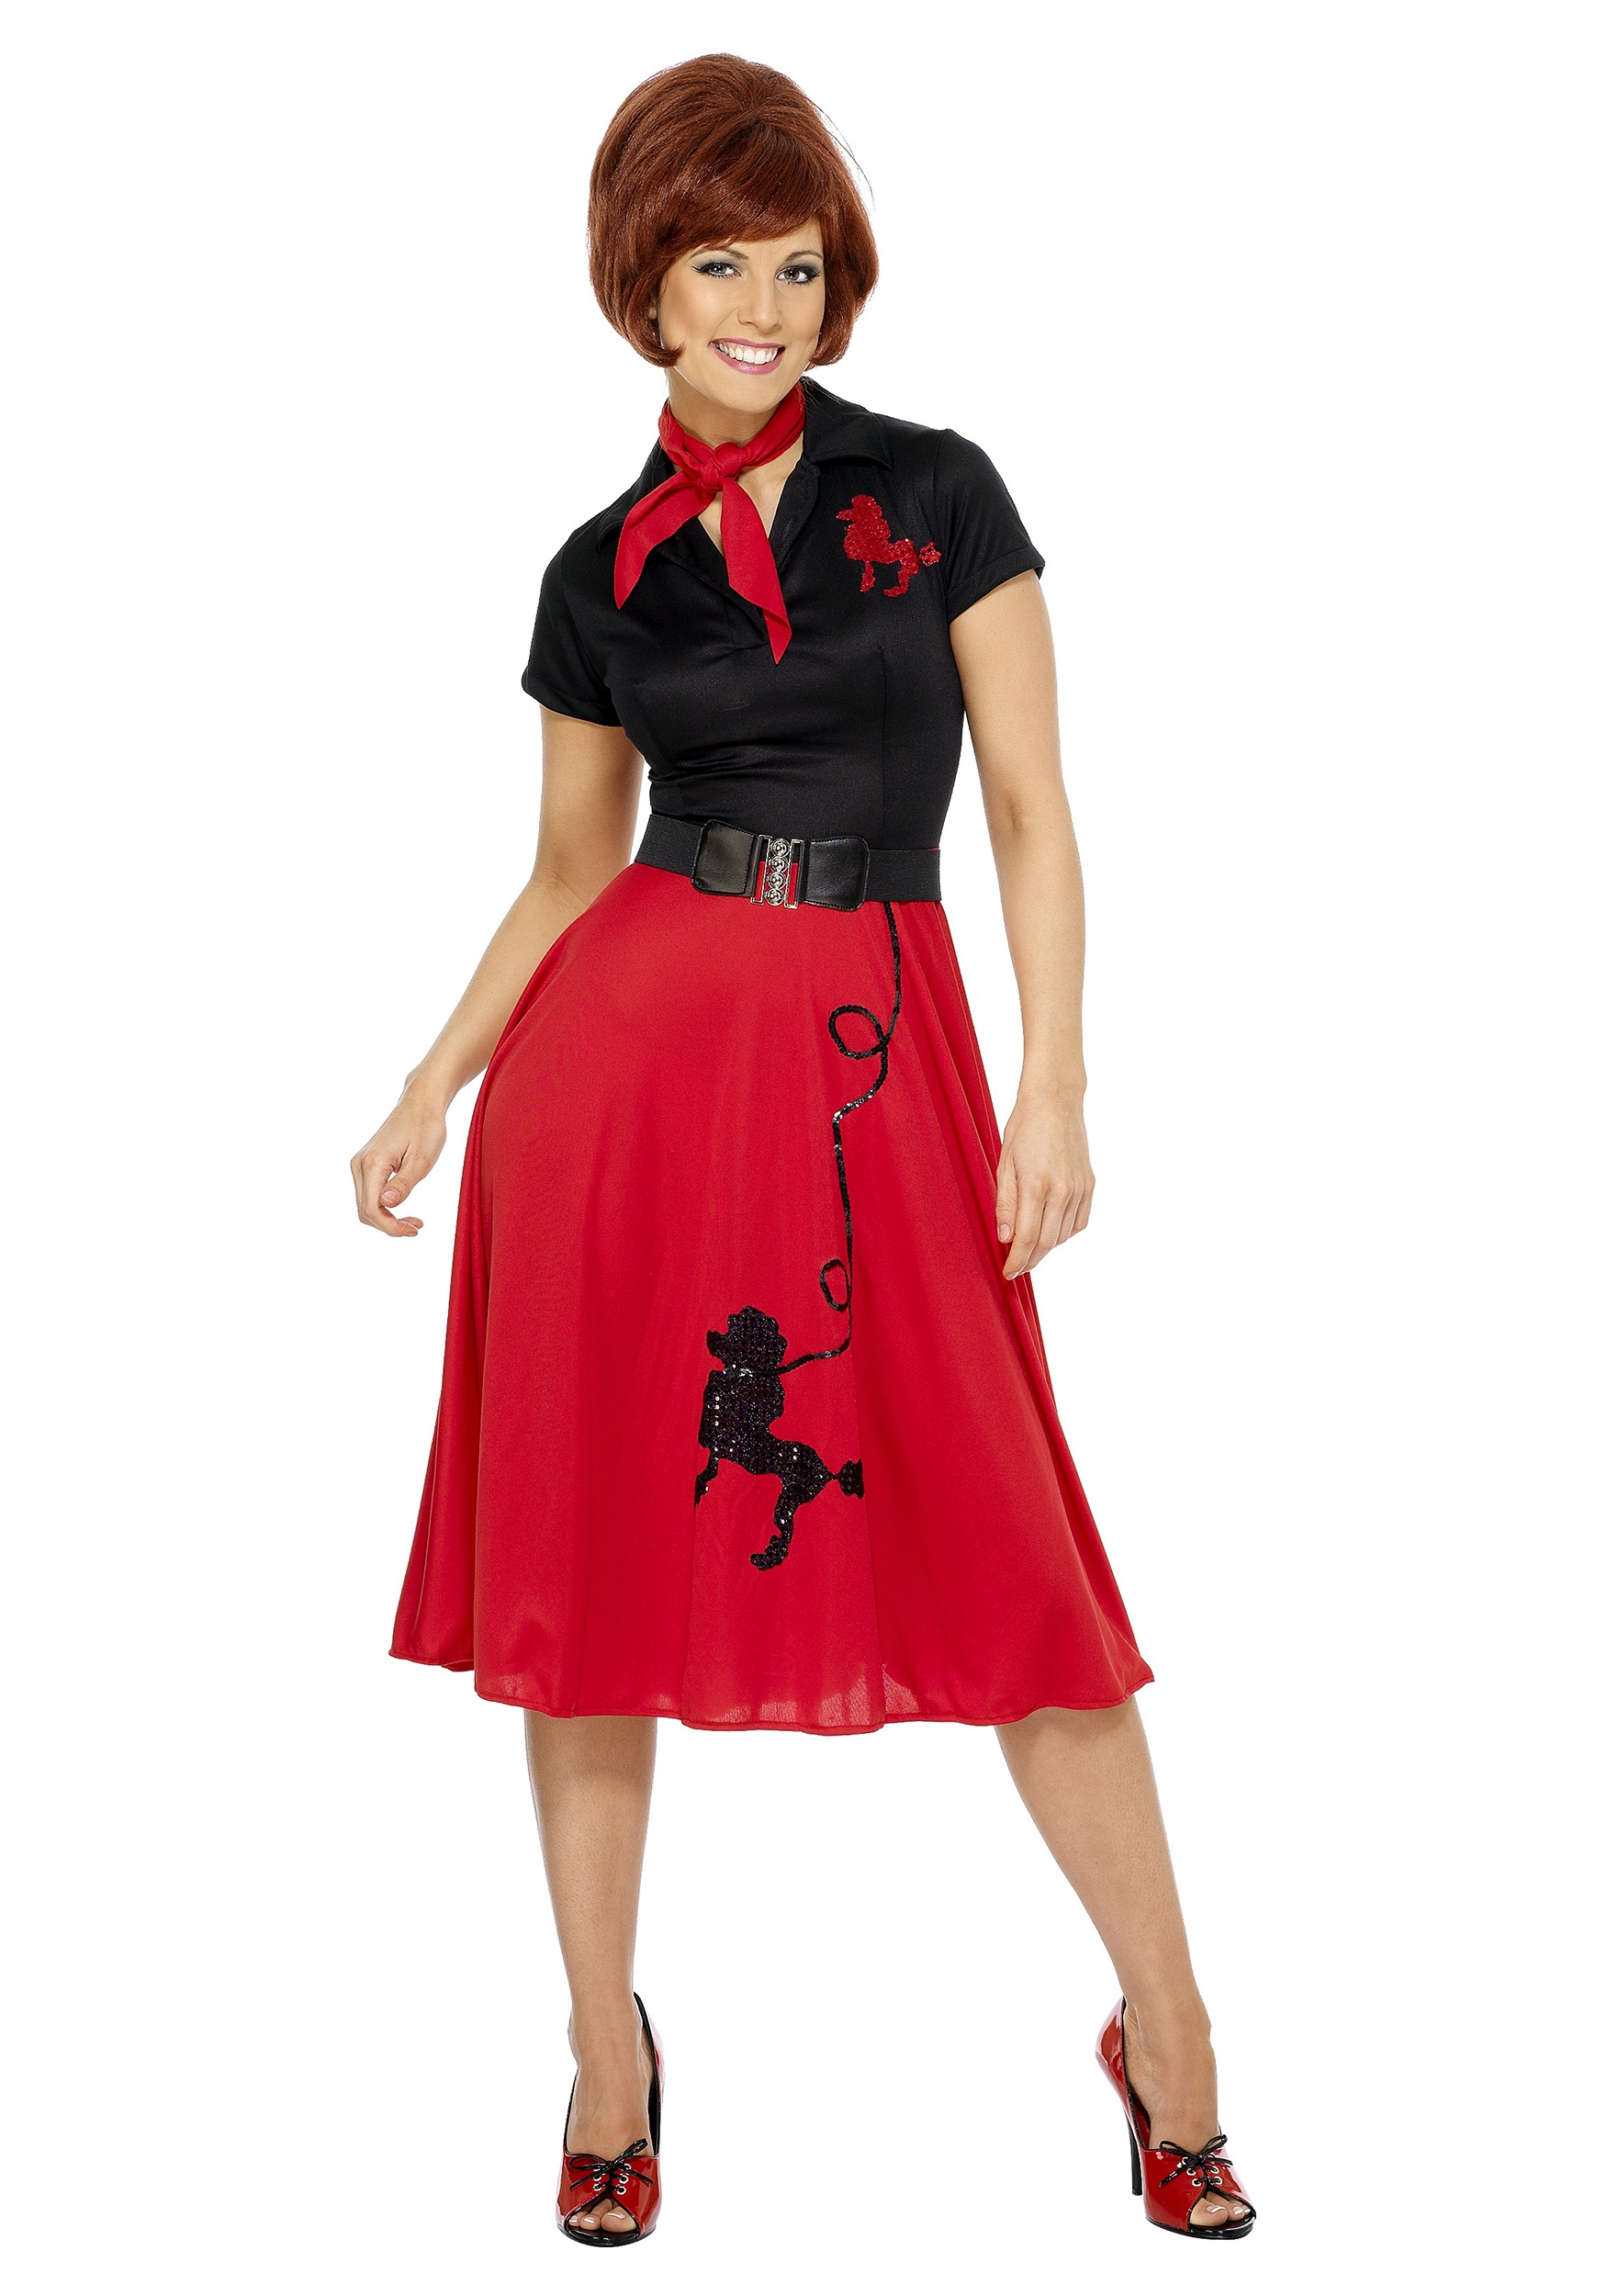 Back To20u0027s Costumes, 50u0027s Costumes, Adult 50u0027s Costumes, Adult Costumes,  New 2018 Costumes, Plus Size Costumes, Poodle Skirts, Theme Costumes, ...